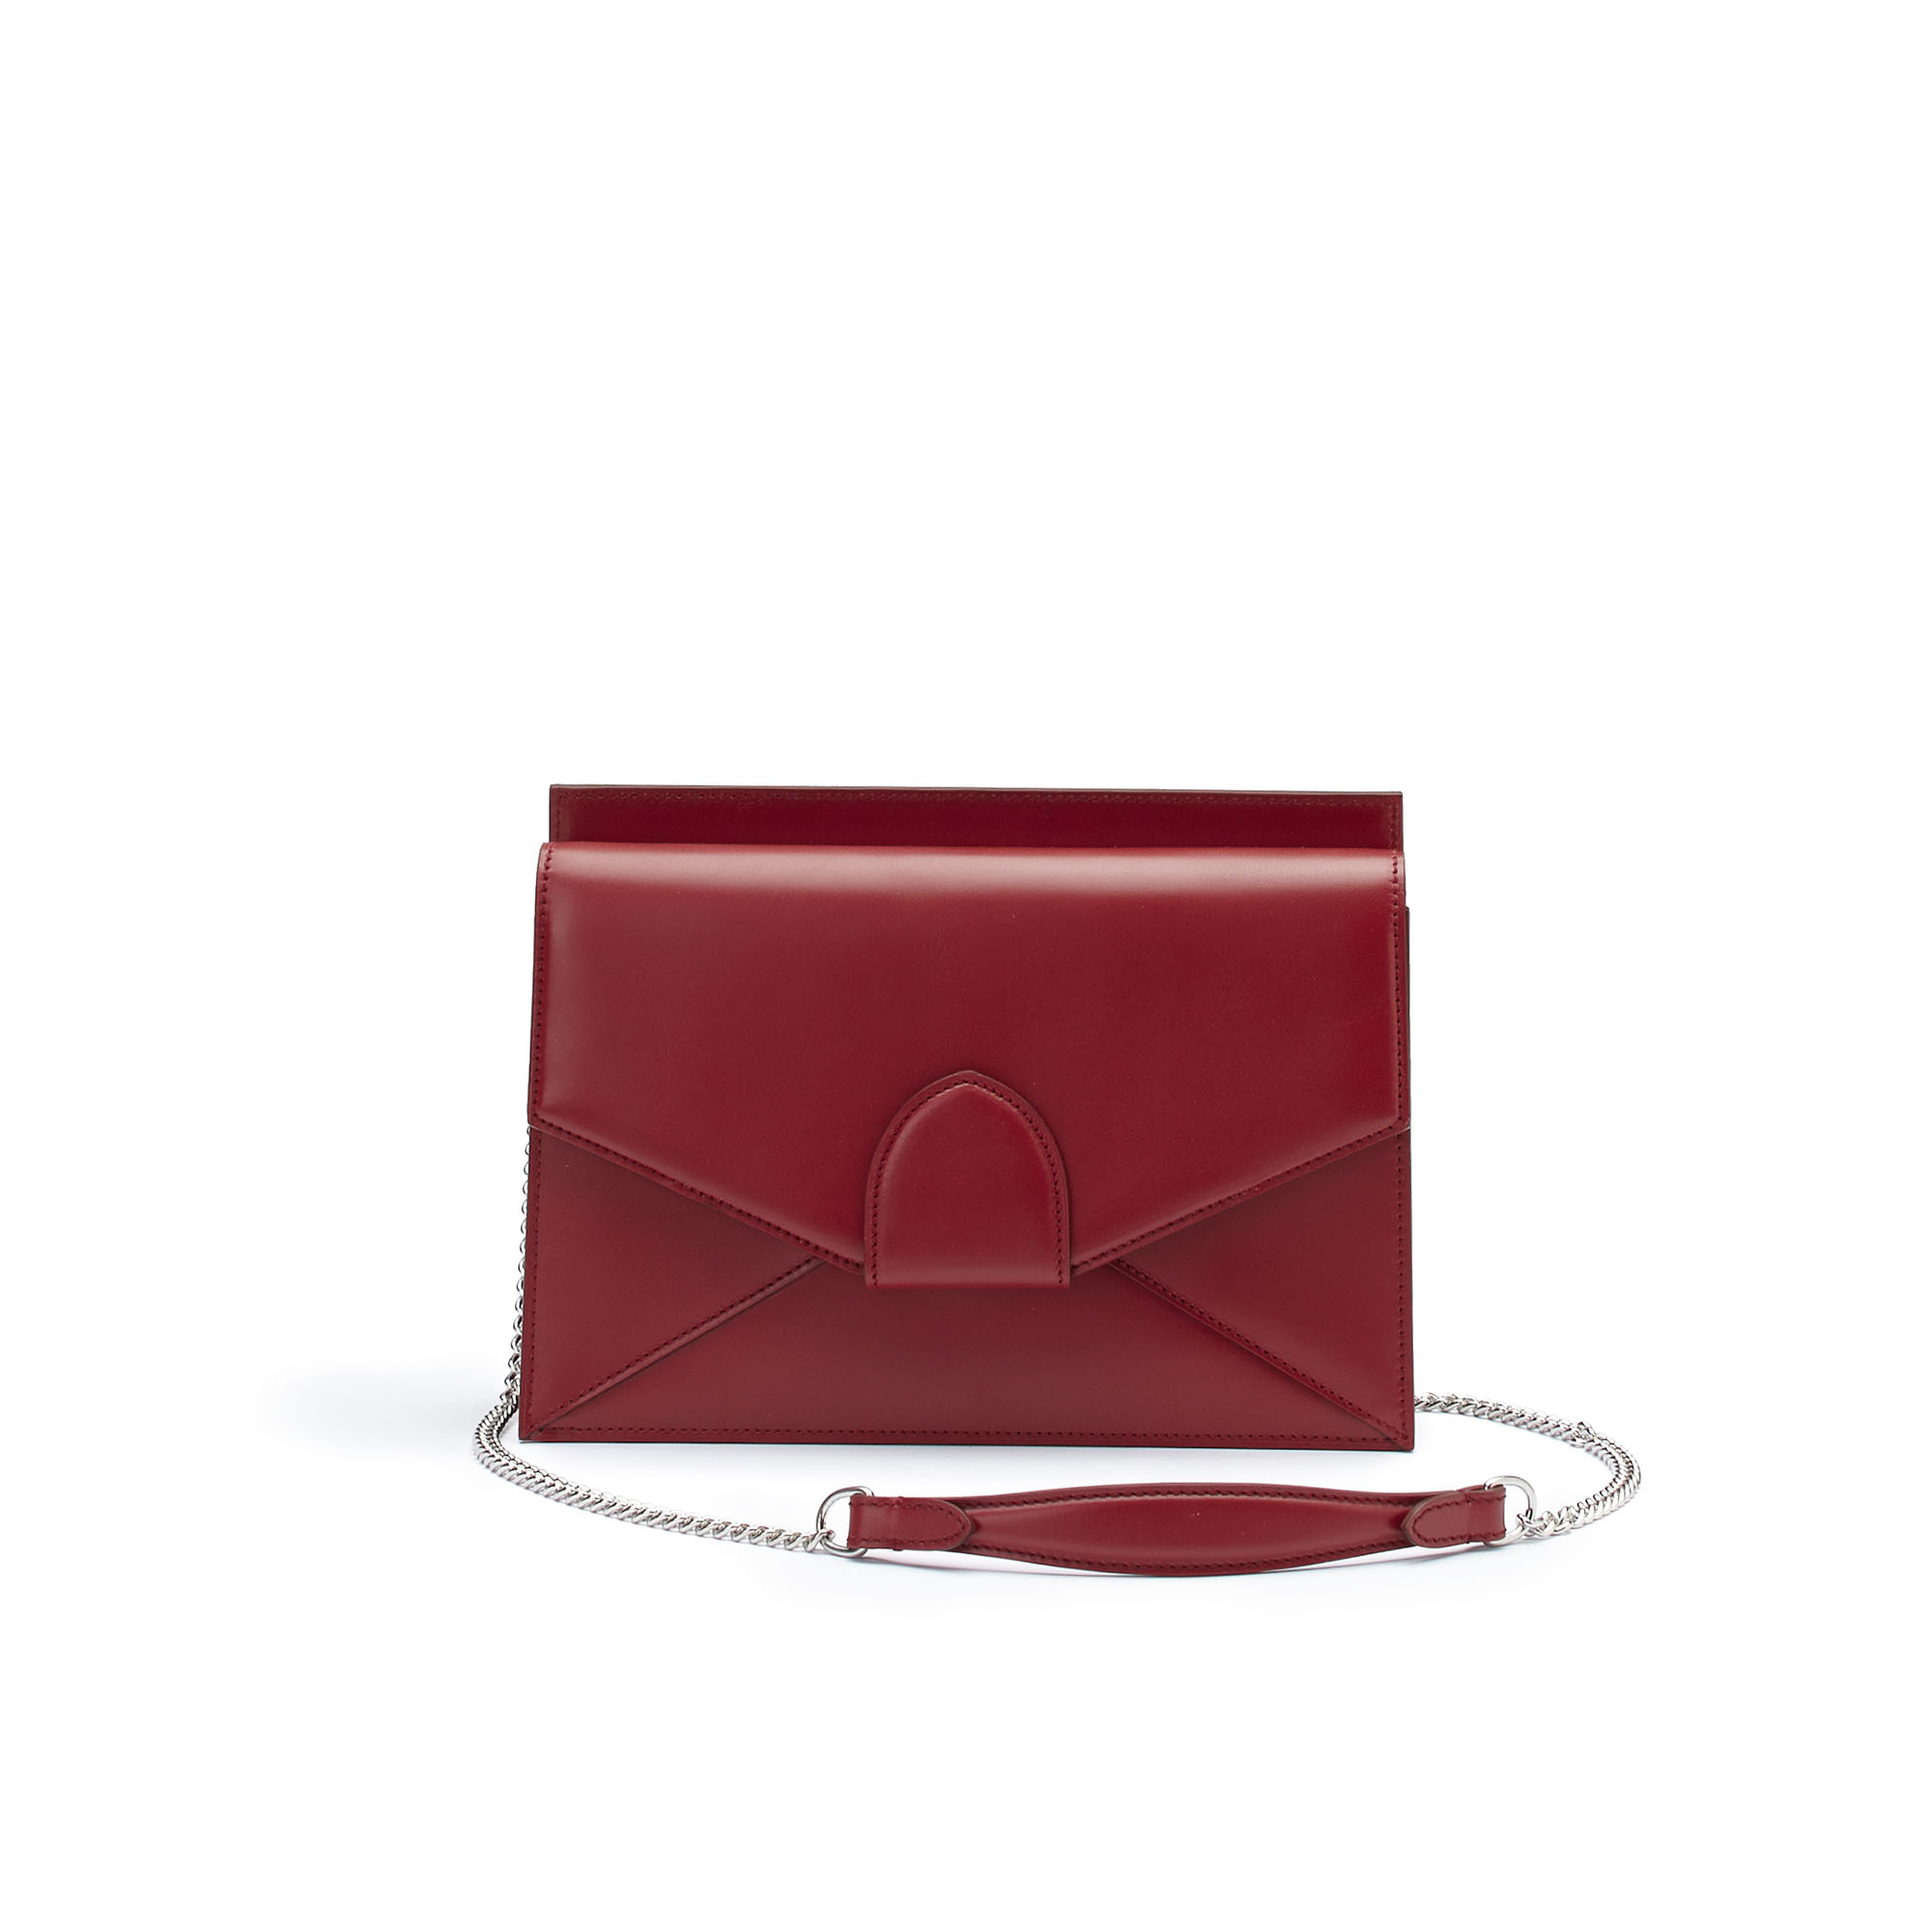 The red french calf Dafne Chain bag by Bertoni 1949 01